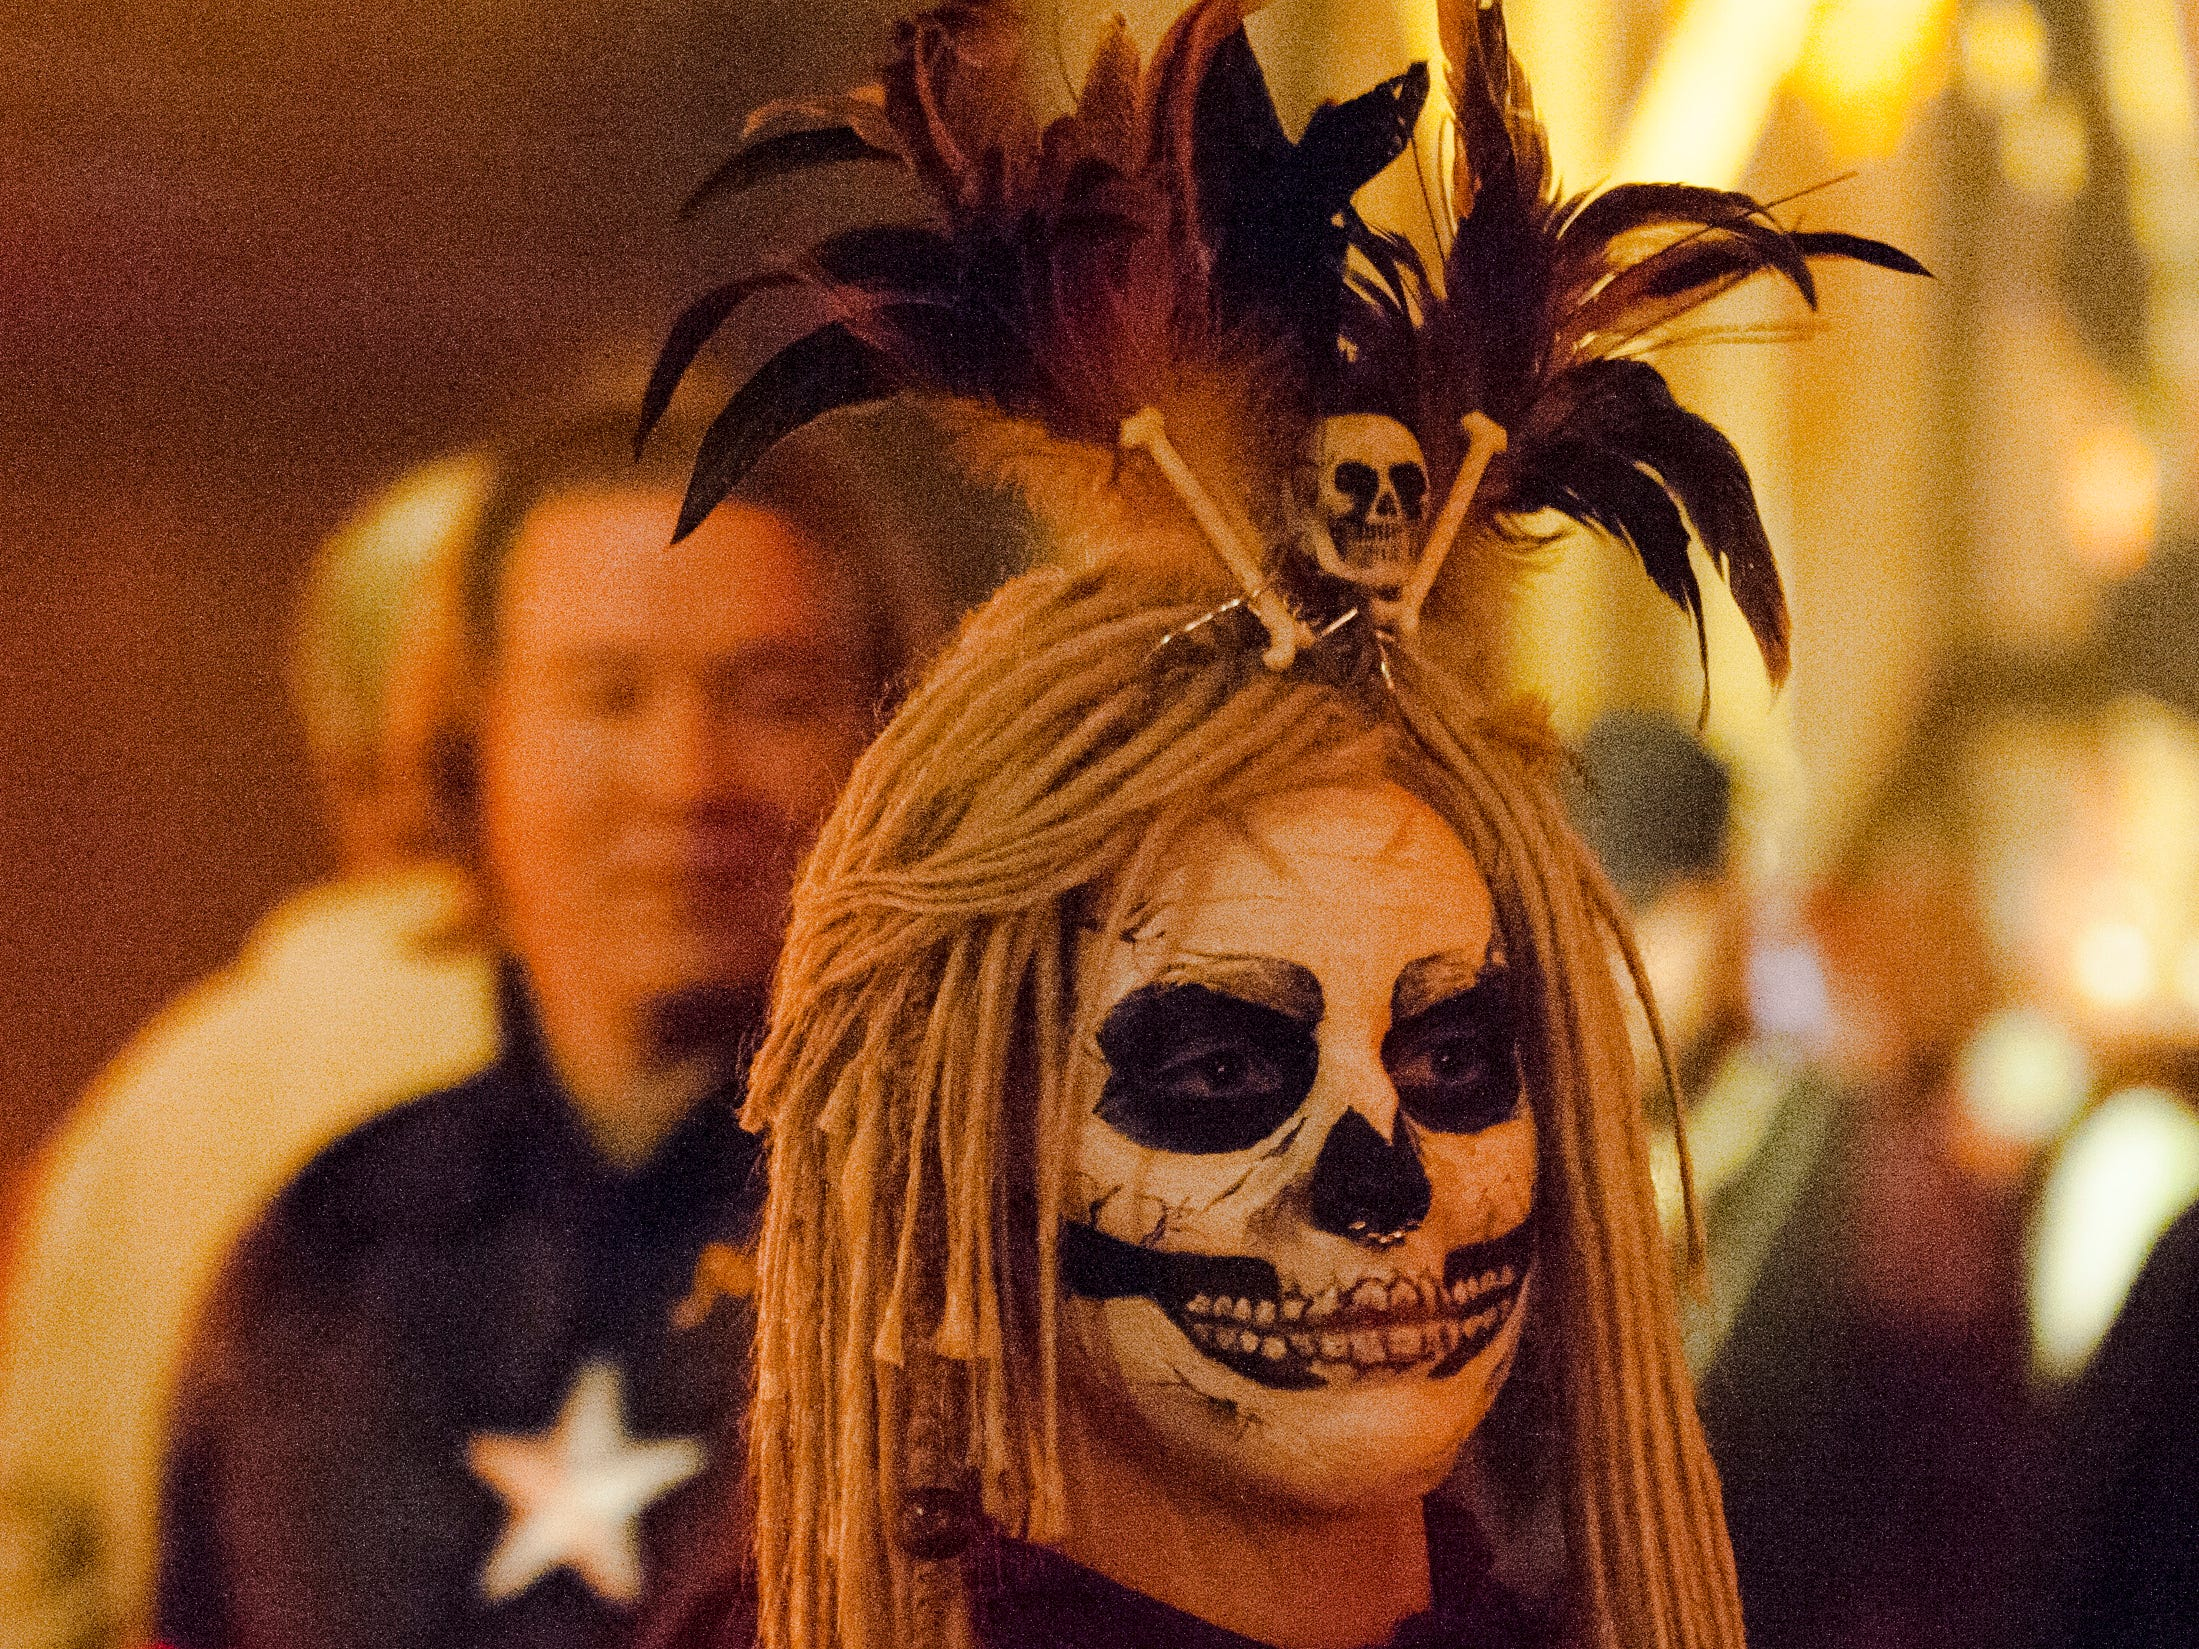 For back-to-back October weekends in Detroit the creepy and the curious alike converge on the towering Masonic Temple for the sprawling masquerade spectacle known as Theatre Bizarre. These are some of the sights seen inside Theatre Bizarre 'The Great Deception' on Saturday, October 13, 2018. Theatre Bizarre concludes this weekend with the second Masquerade Gala on Friday the 19th and the final Theatre Bizarre party on Saturday the 20th. For more information check out www.theatrebizarre.com. (John T. Greilick, The Detroit News)